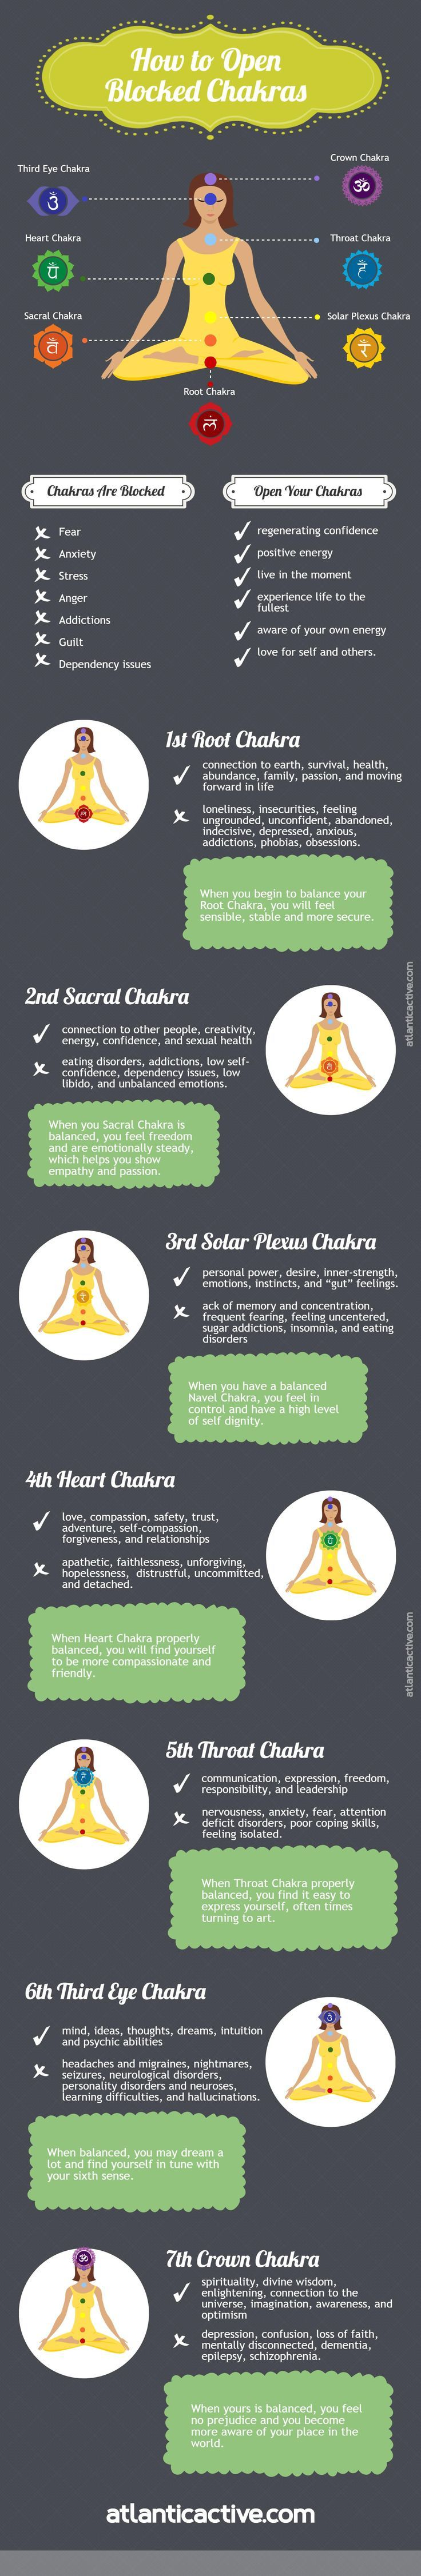 how to open blocled chakras a step by step guide